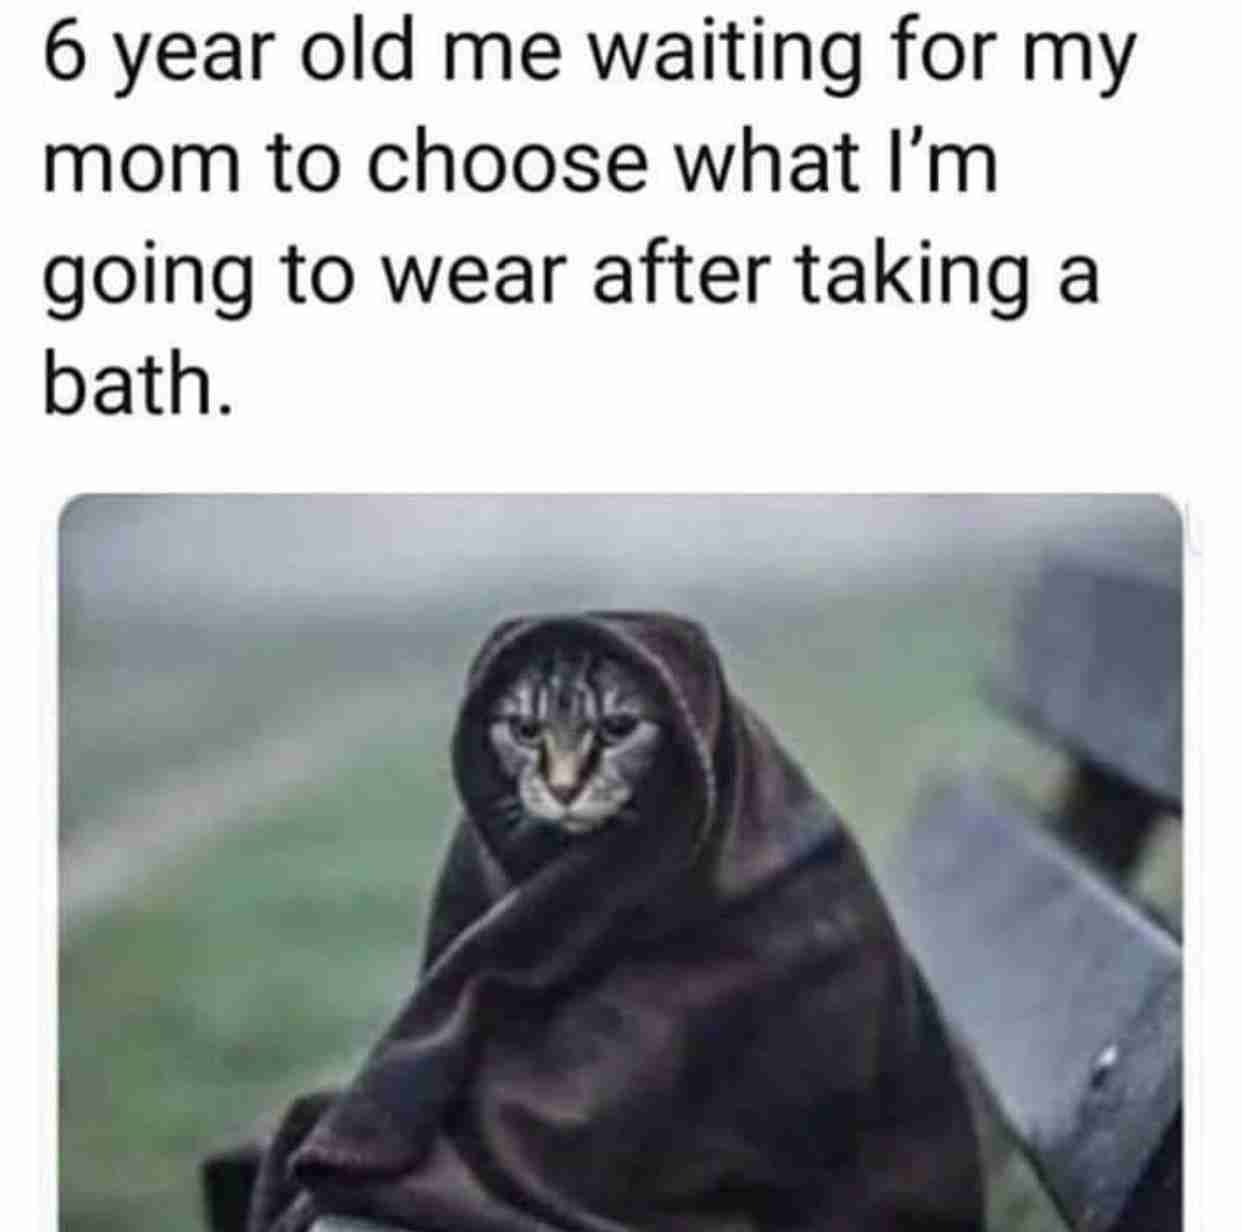 6 years old me waiting for my mom to choose what I'm going to wear after taking a bath.